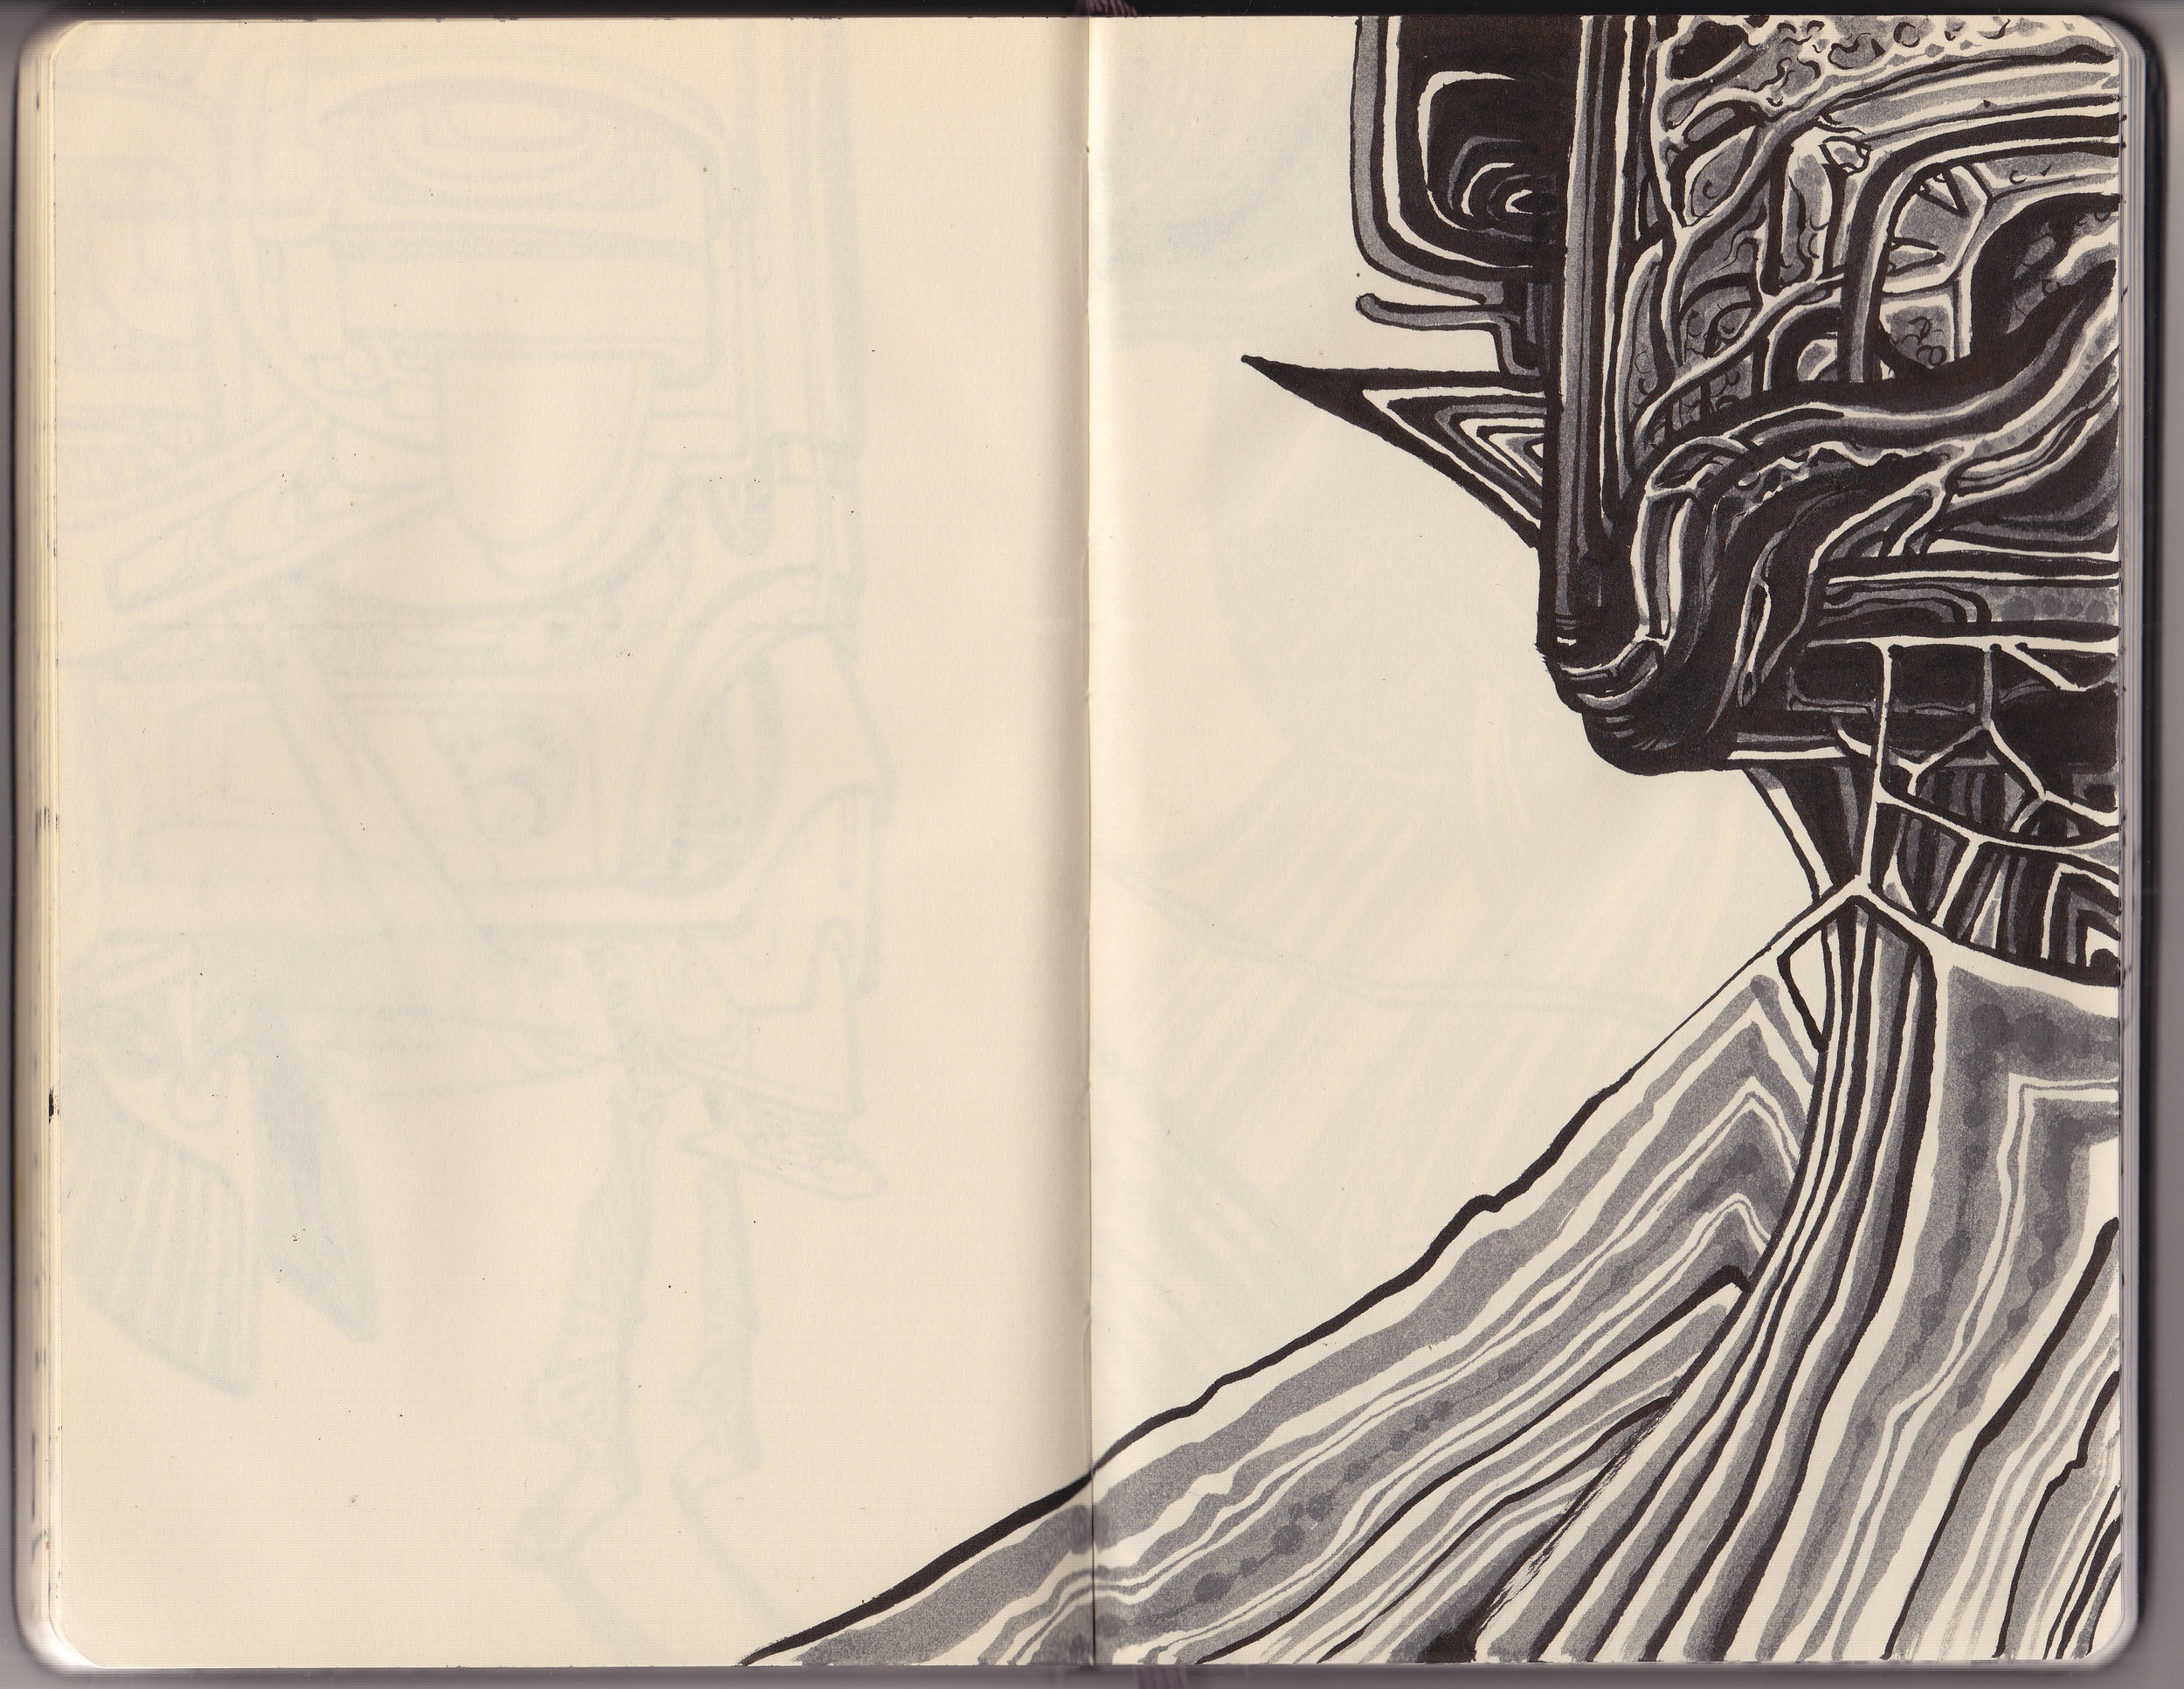 Sketchbook selection, 2015.